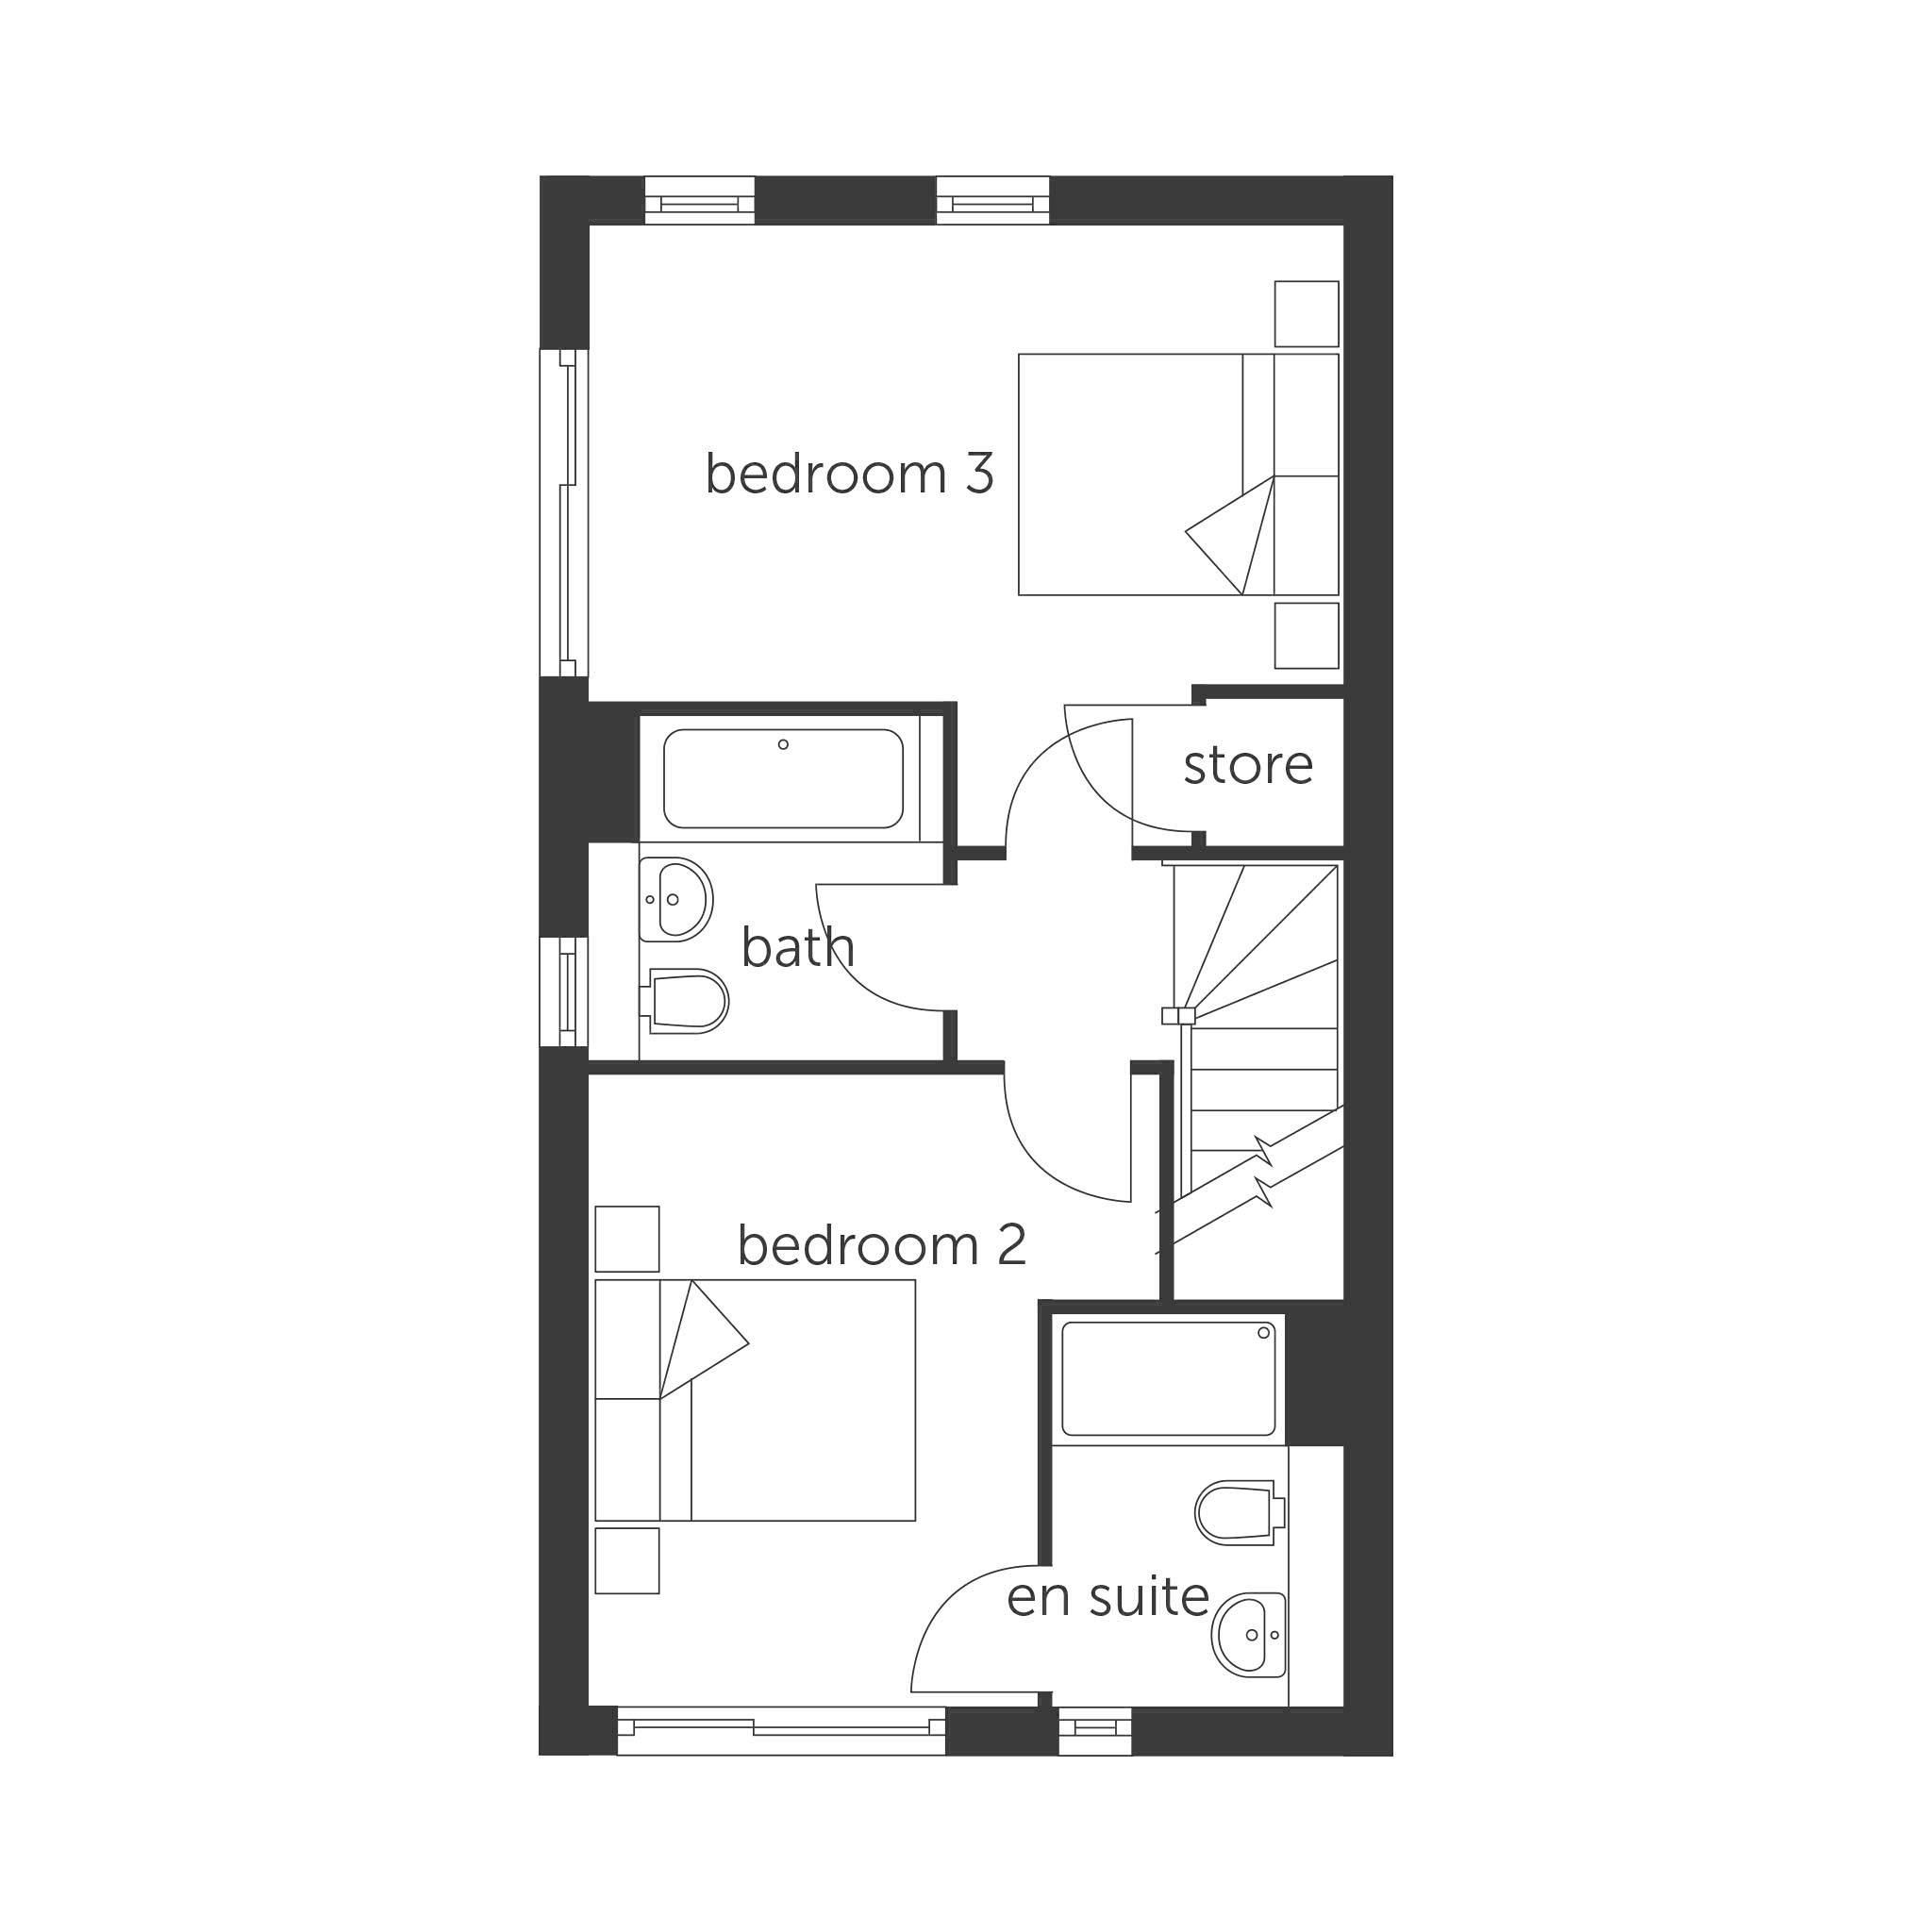 Hebdon road tooting sw17 4 bedroom terraced house for sale 43051137 primelocation for Tooting broadway swimming pool